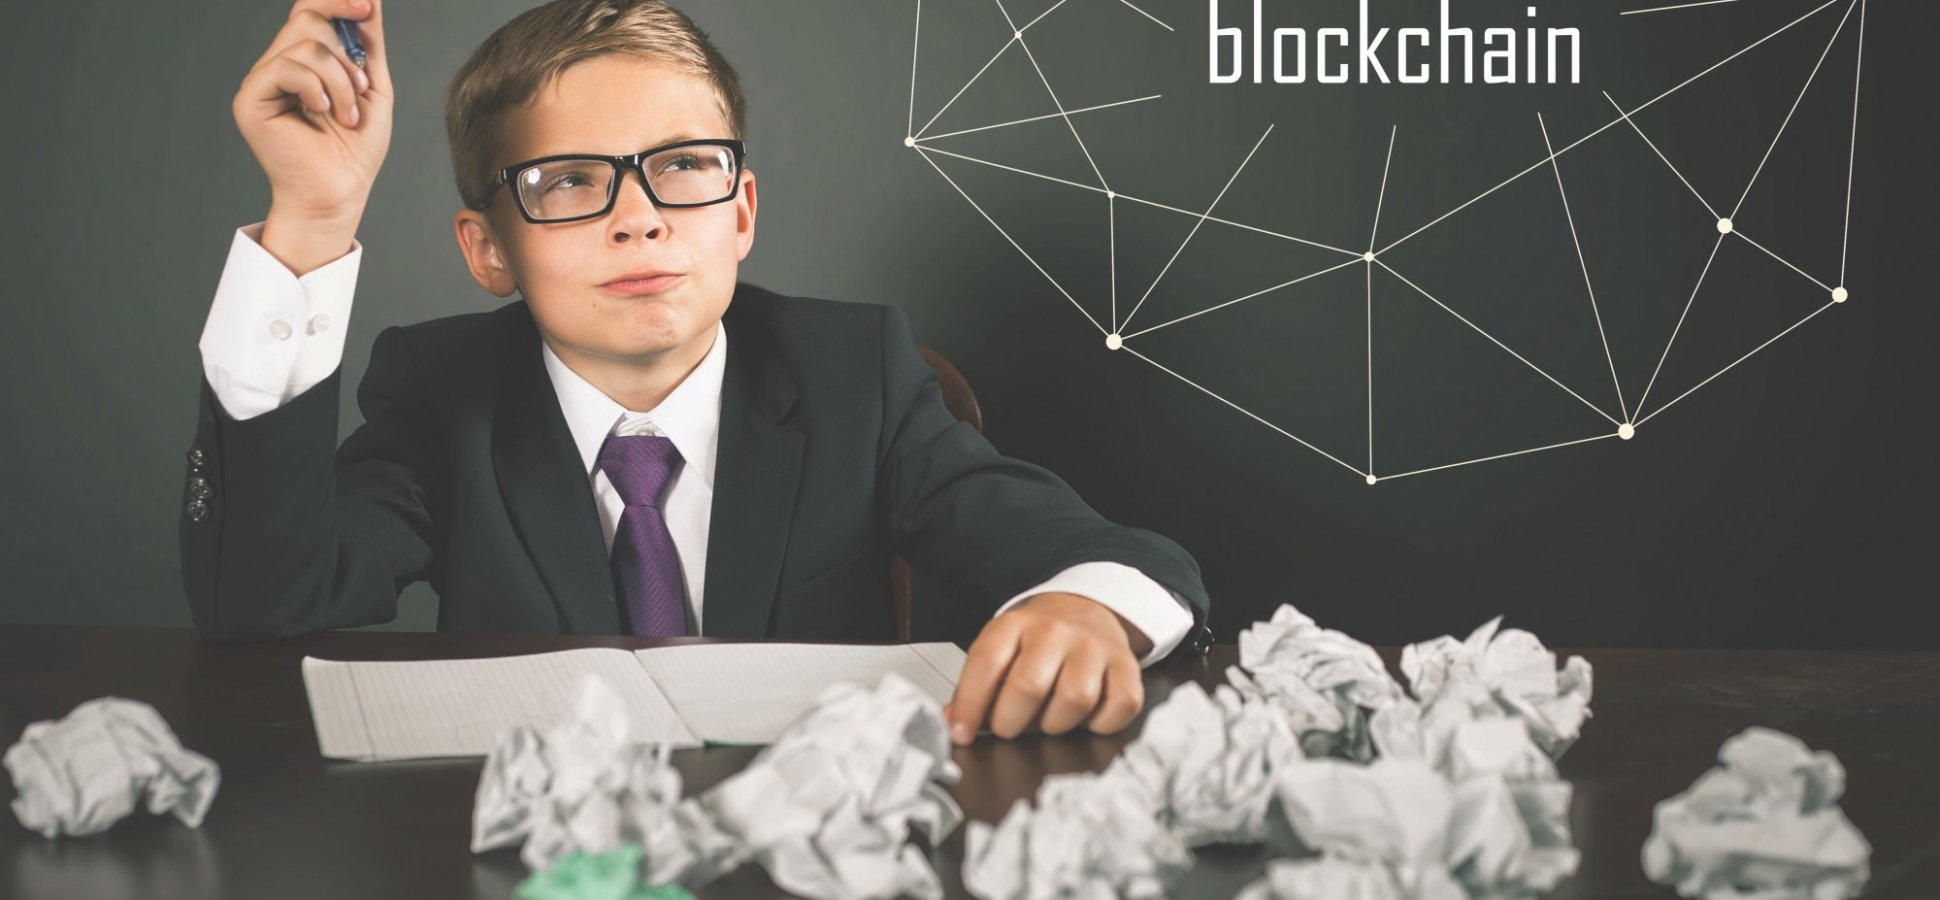 5 Ways to Help Kids (and Even Adults) Understand Blockchain